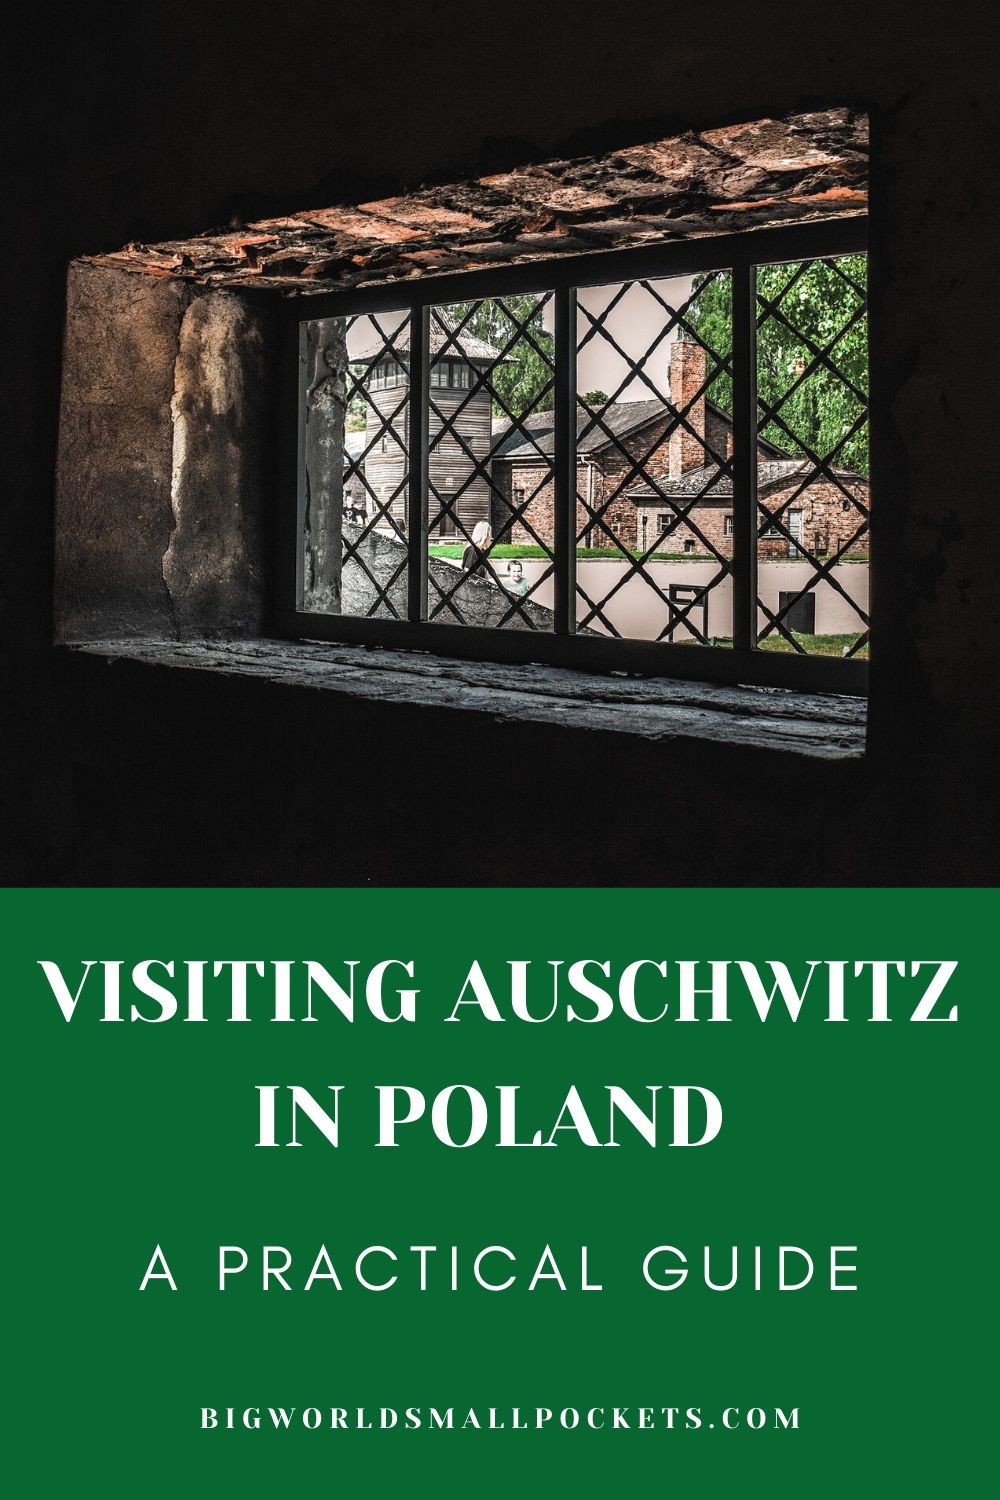 Visiting Auschwitz in Poland - A Practical Guide